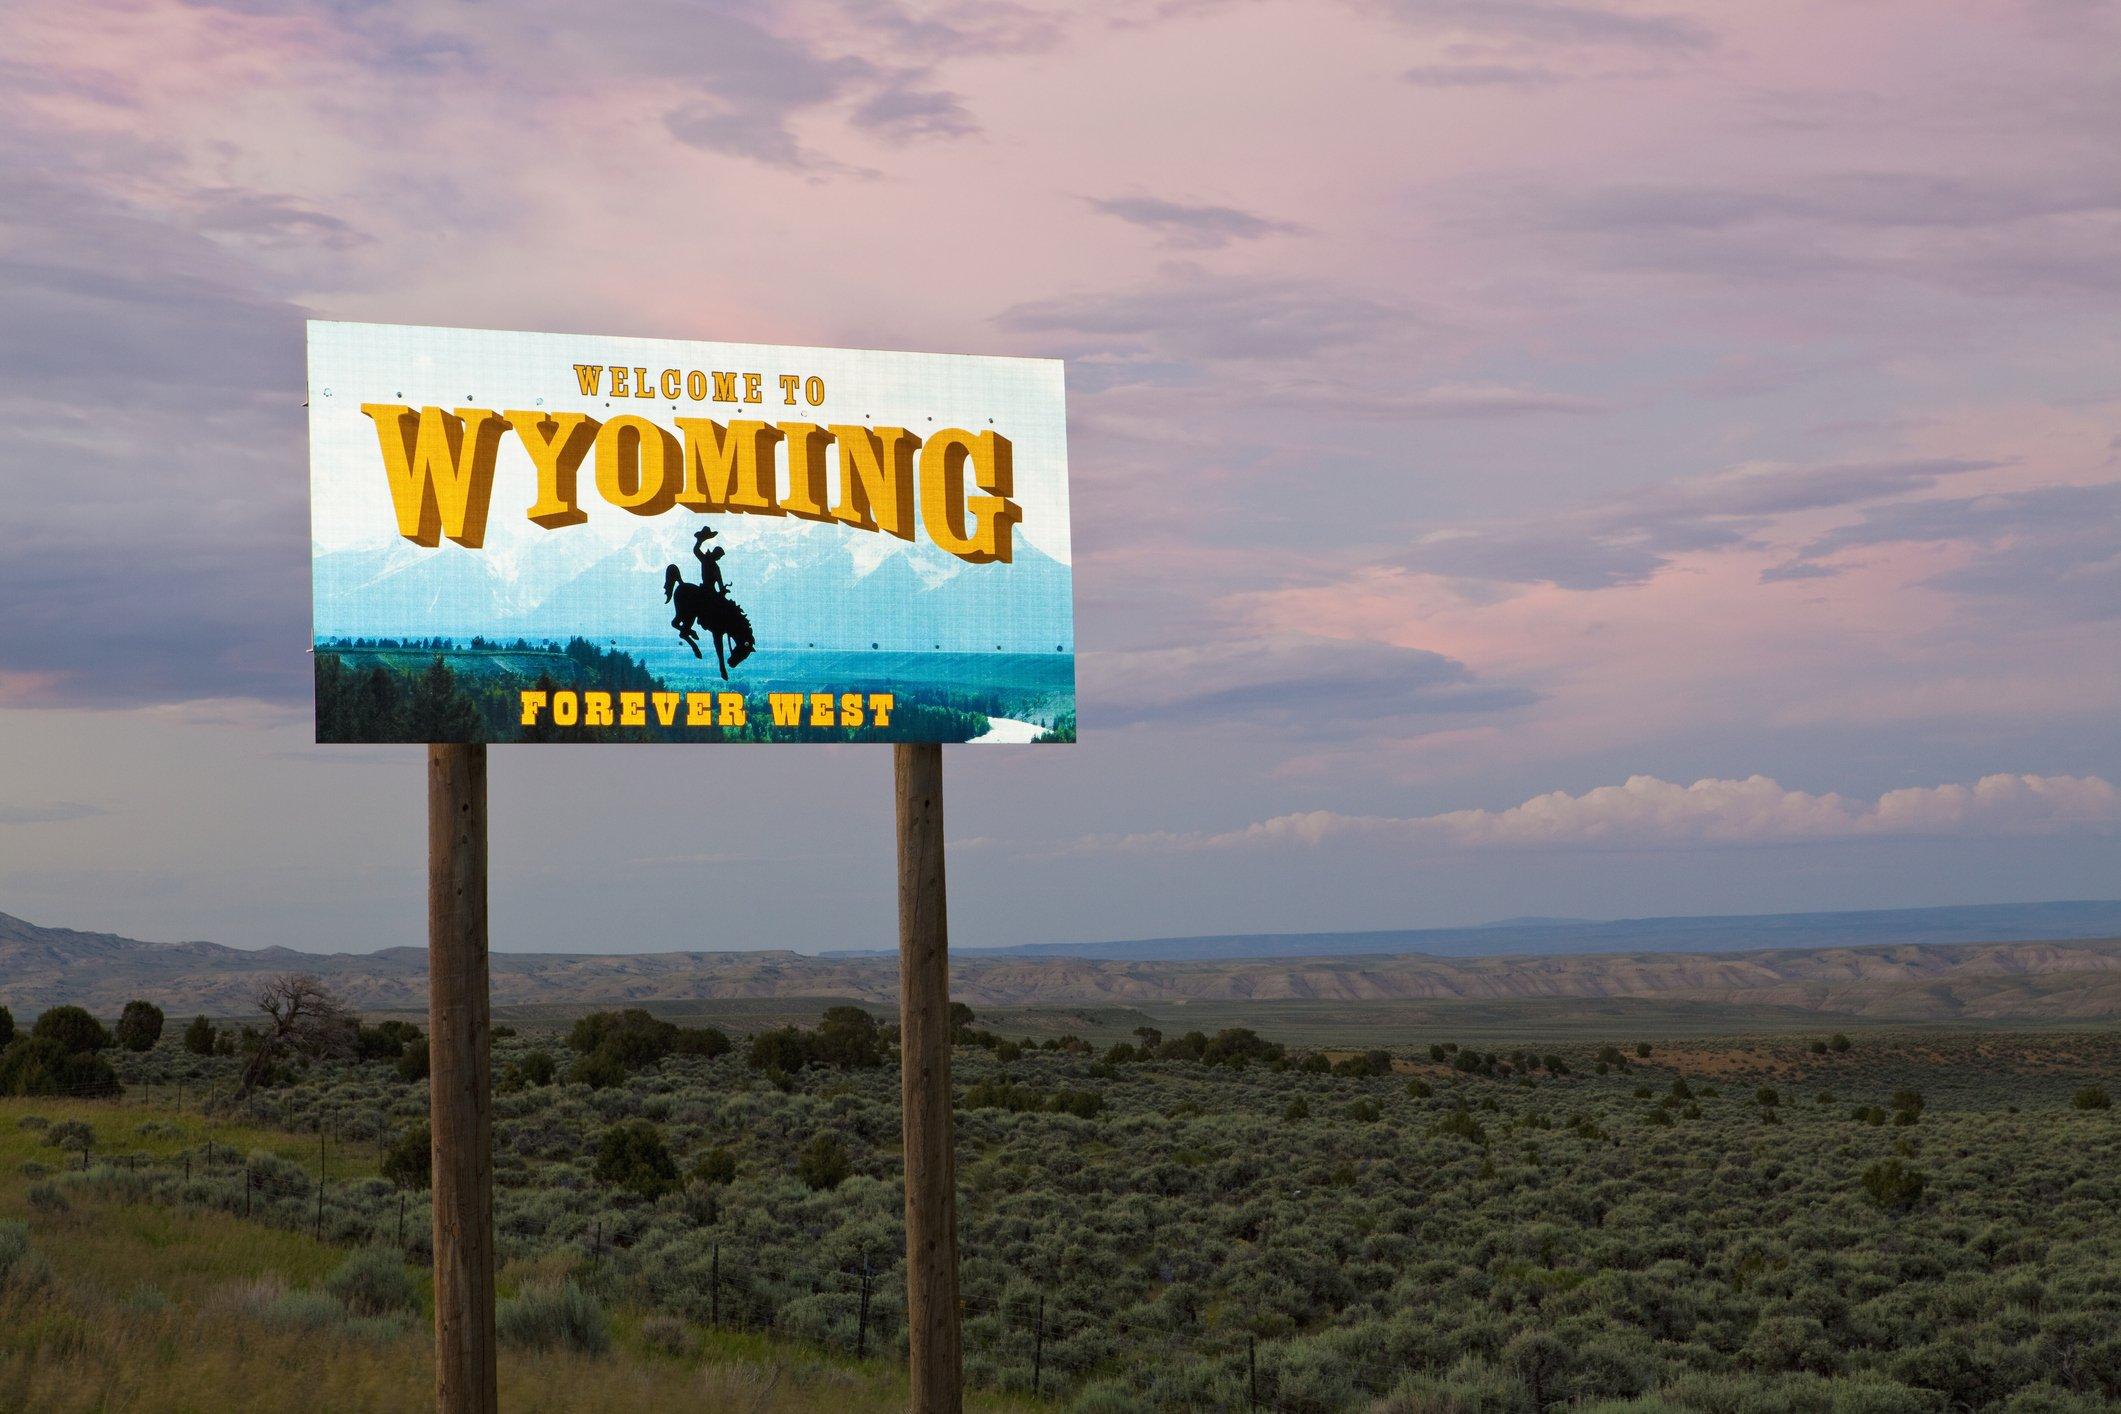 Slide 51 of 51: The sign for Wyoming changes the most frequently along with the state license plate, so don't get used to this image for too long! Next, check out the strangest roadside attraction in every state.